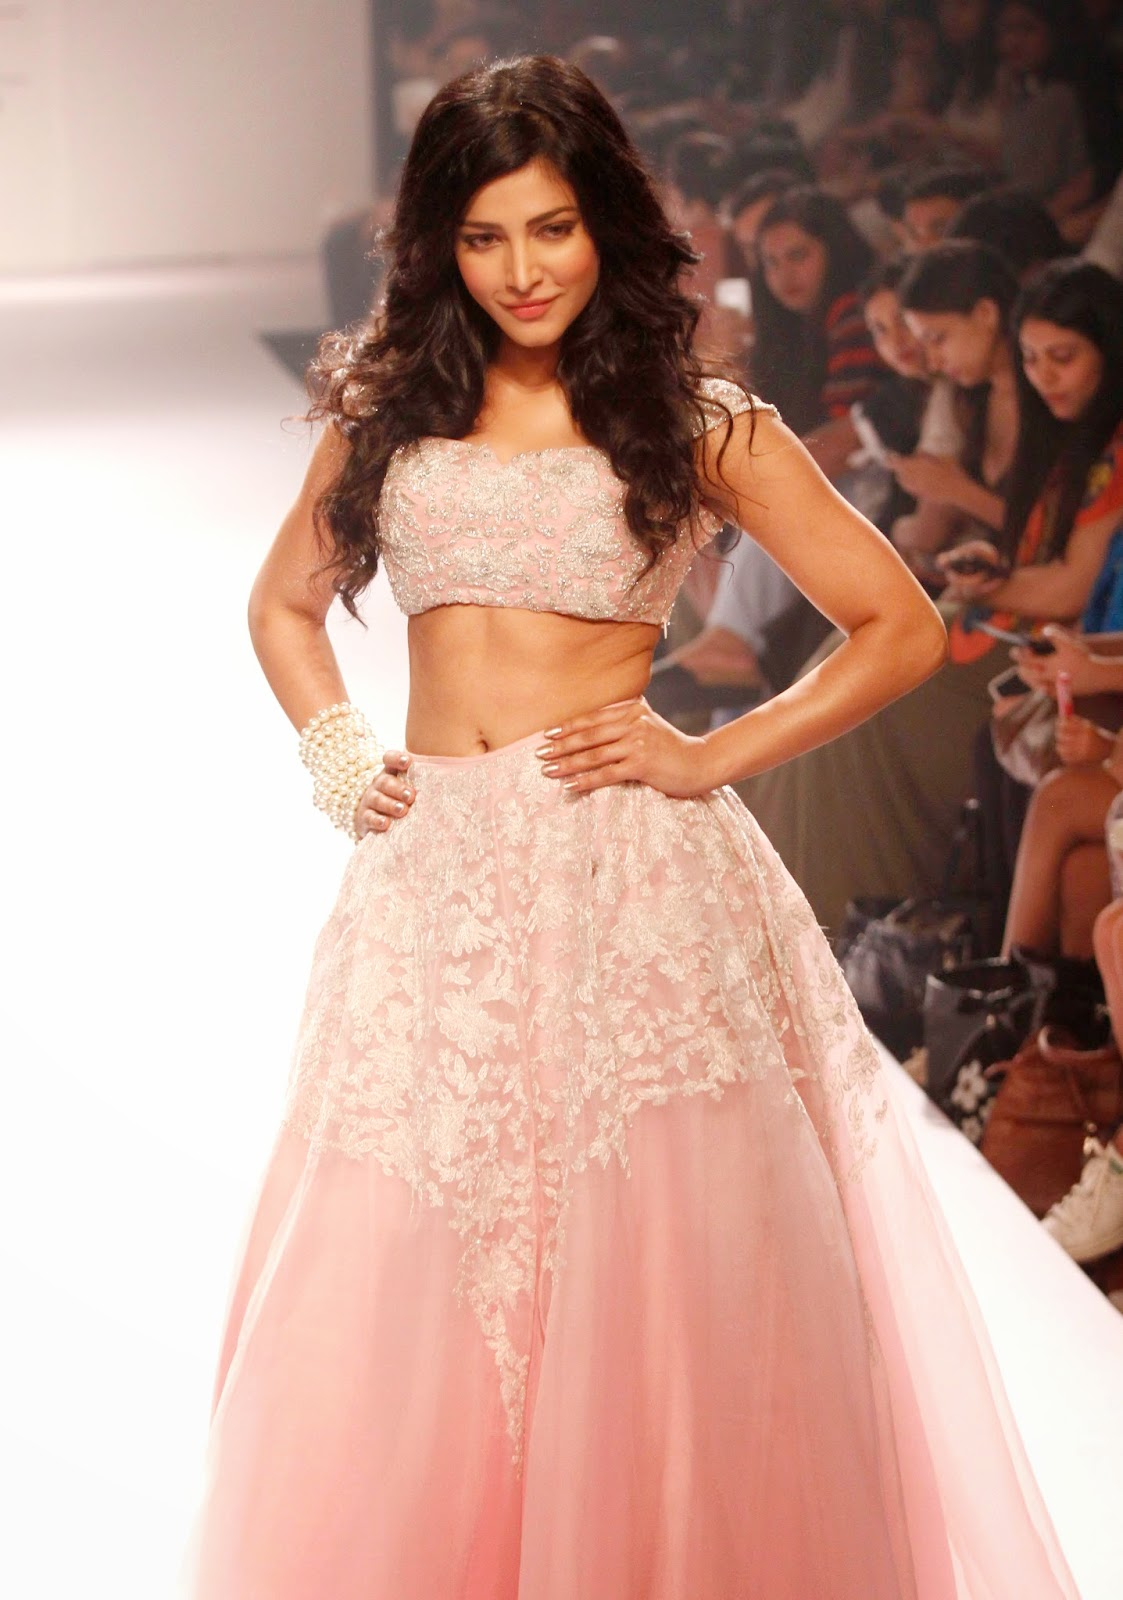 Shruti Haasan Hot Navel Show Wallpapers In Pink Dress